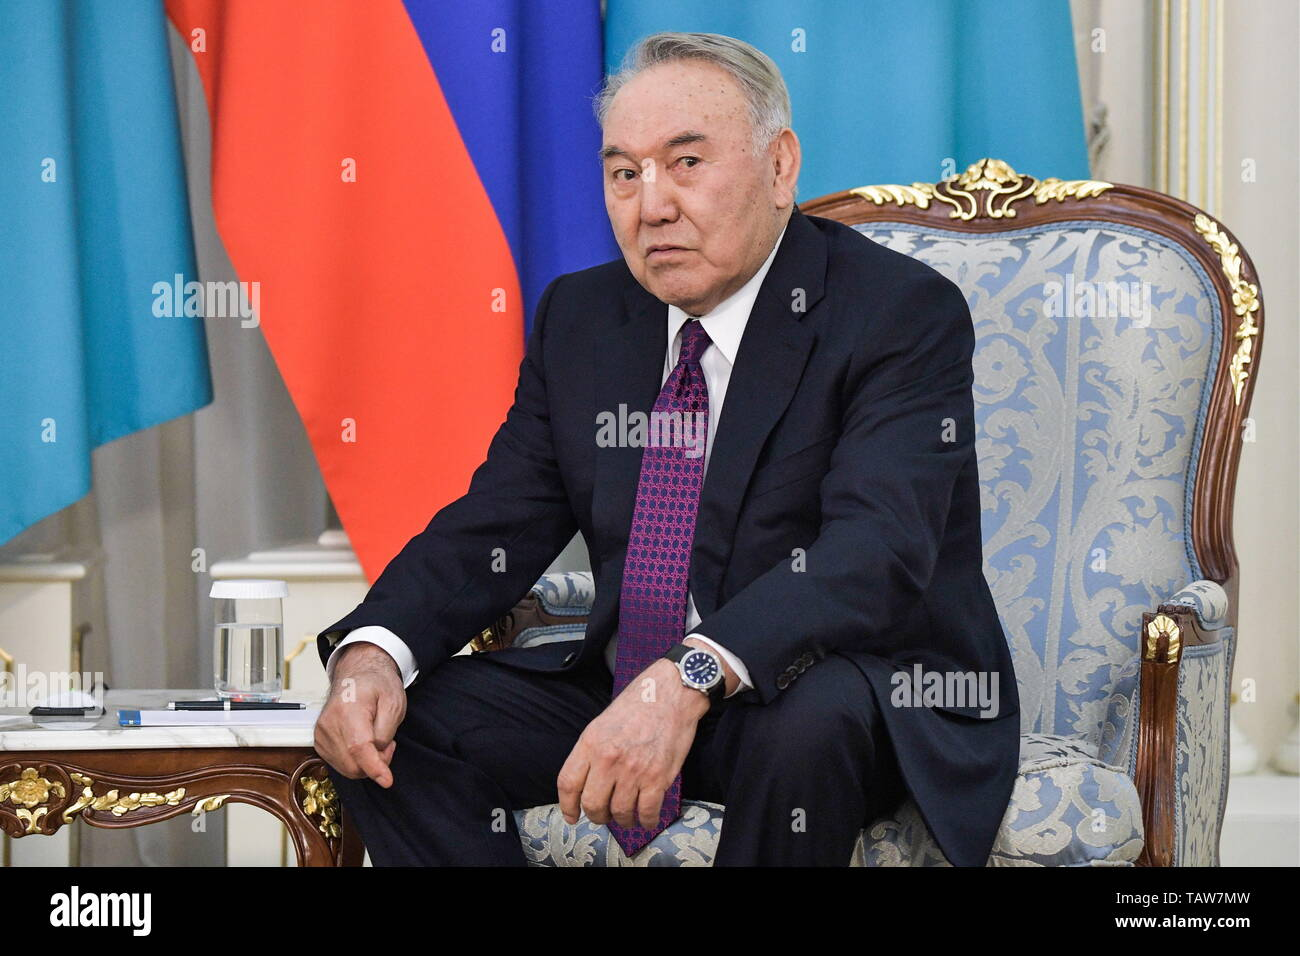 Nur Sultan, Kazakhstan. 28th May, 2019. NUR-SULTAN, KAZAKHSTAN - MAY 28, 2019: Kazakhstan's Former President Nursultan Nazarbayev during a meeting with Russia's President Vladimir Putin (not in picture) at the Akorda, the residence of the President of Kazakhstan. Alexei Nikolsky/Russian Presidential Press and Information Office/TASS Credit: ITAR-TASS News Agency/Alamy Live News - Stock Image